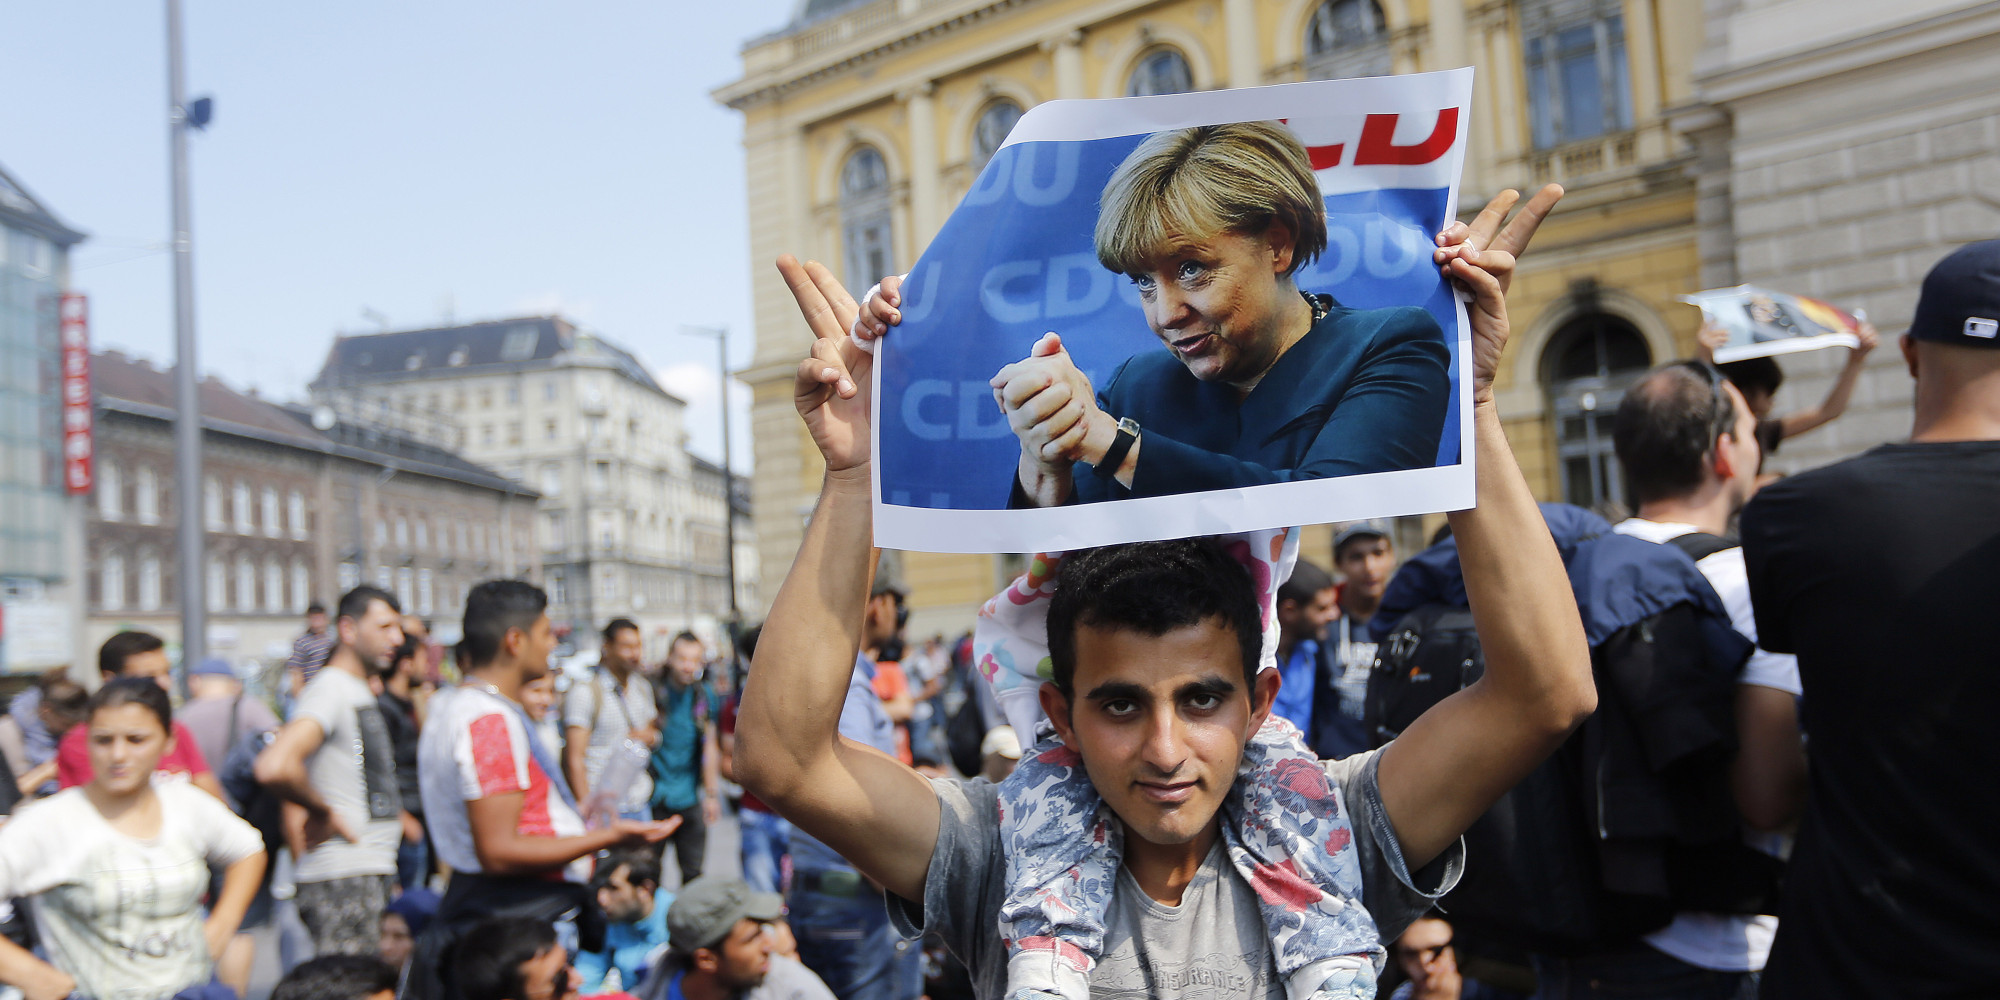 A man holds up a poster of German Chacellor Angela Merkel before starting a march out of  Budapest, Hungary, Friday, Sept. 4, 2015. Over 150,000 people seeking to enter Europe have reached Hungary this year, most coming through the southern border with Serbia, and many apply for asylum but quickly try to leave for richer EU countries. (AP Photo/Frank Augstein)